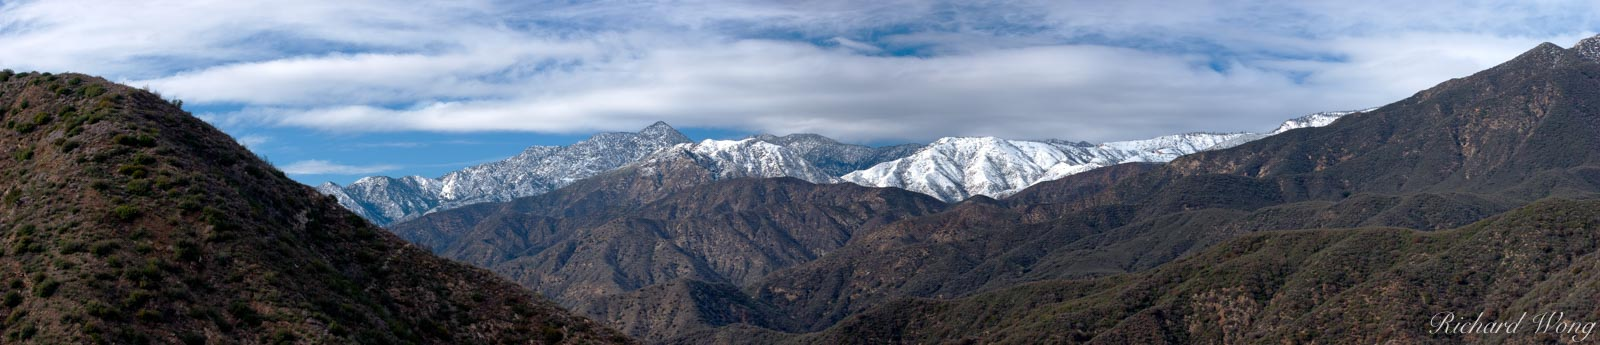 angeles national forest, glendora mountain road, landscape, los angeles county, nature, san gabriel mountains, scenic landscapes, scenics, snow, southern california, united states of america, usa, win, photo